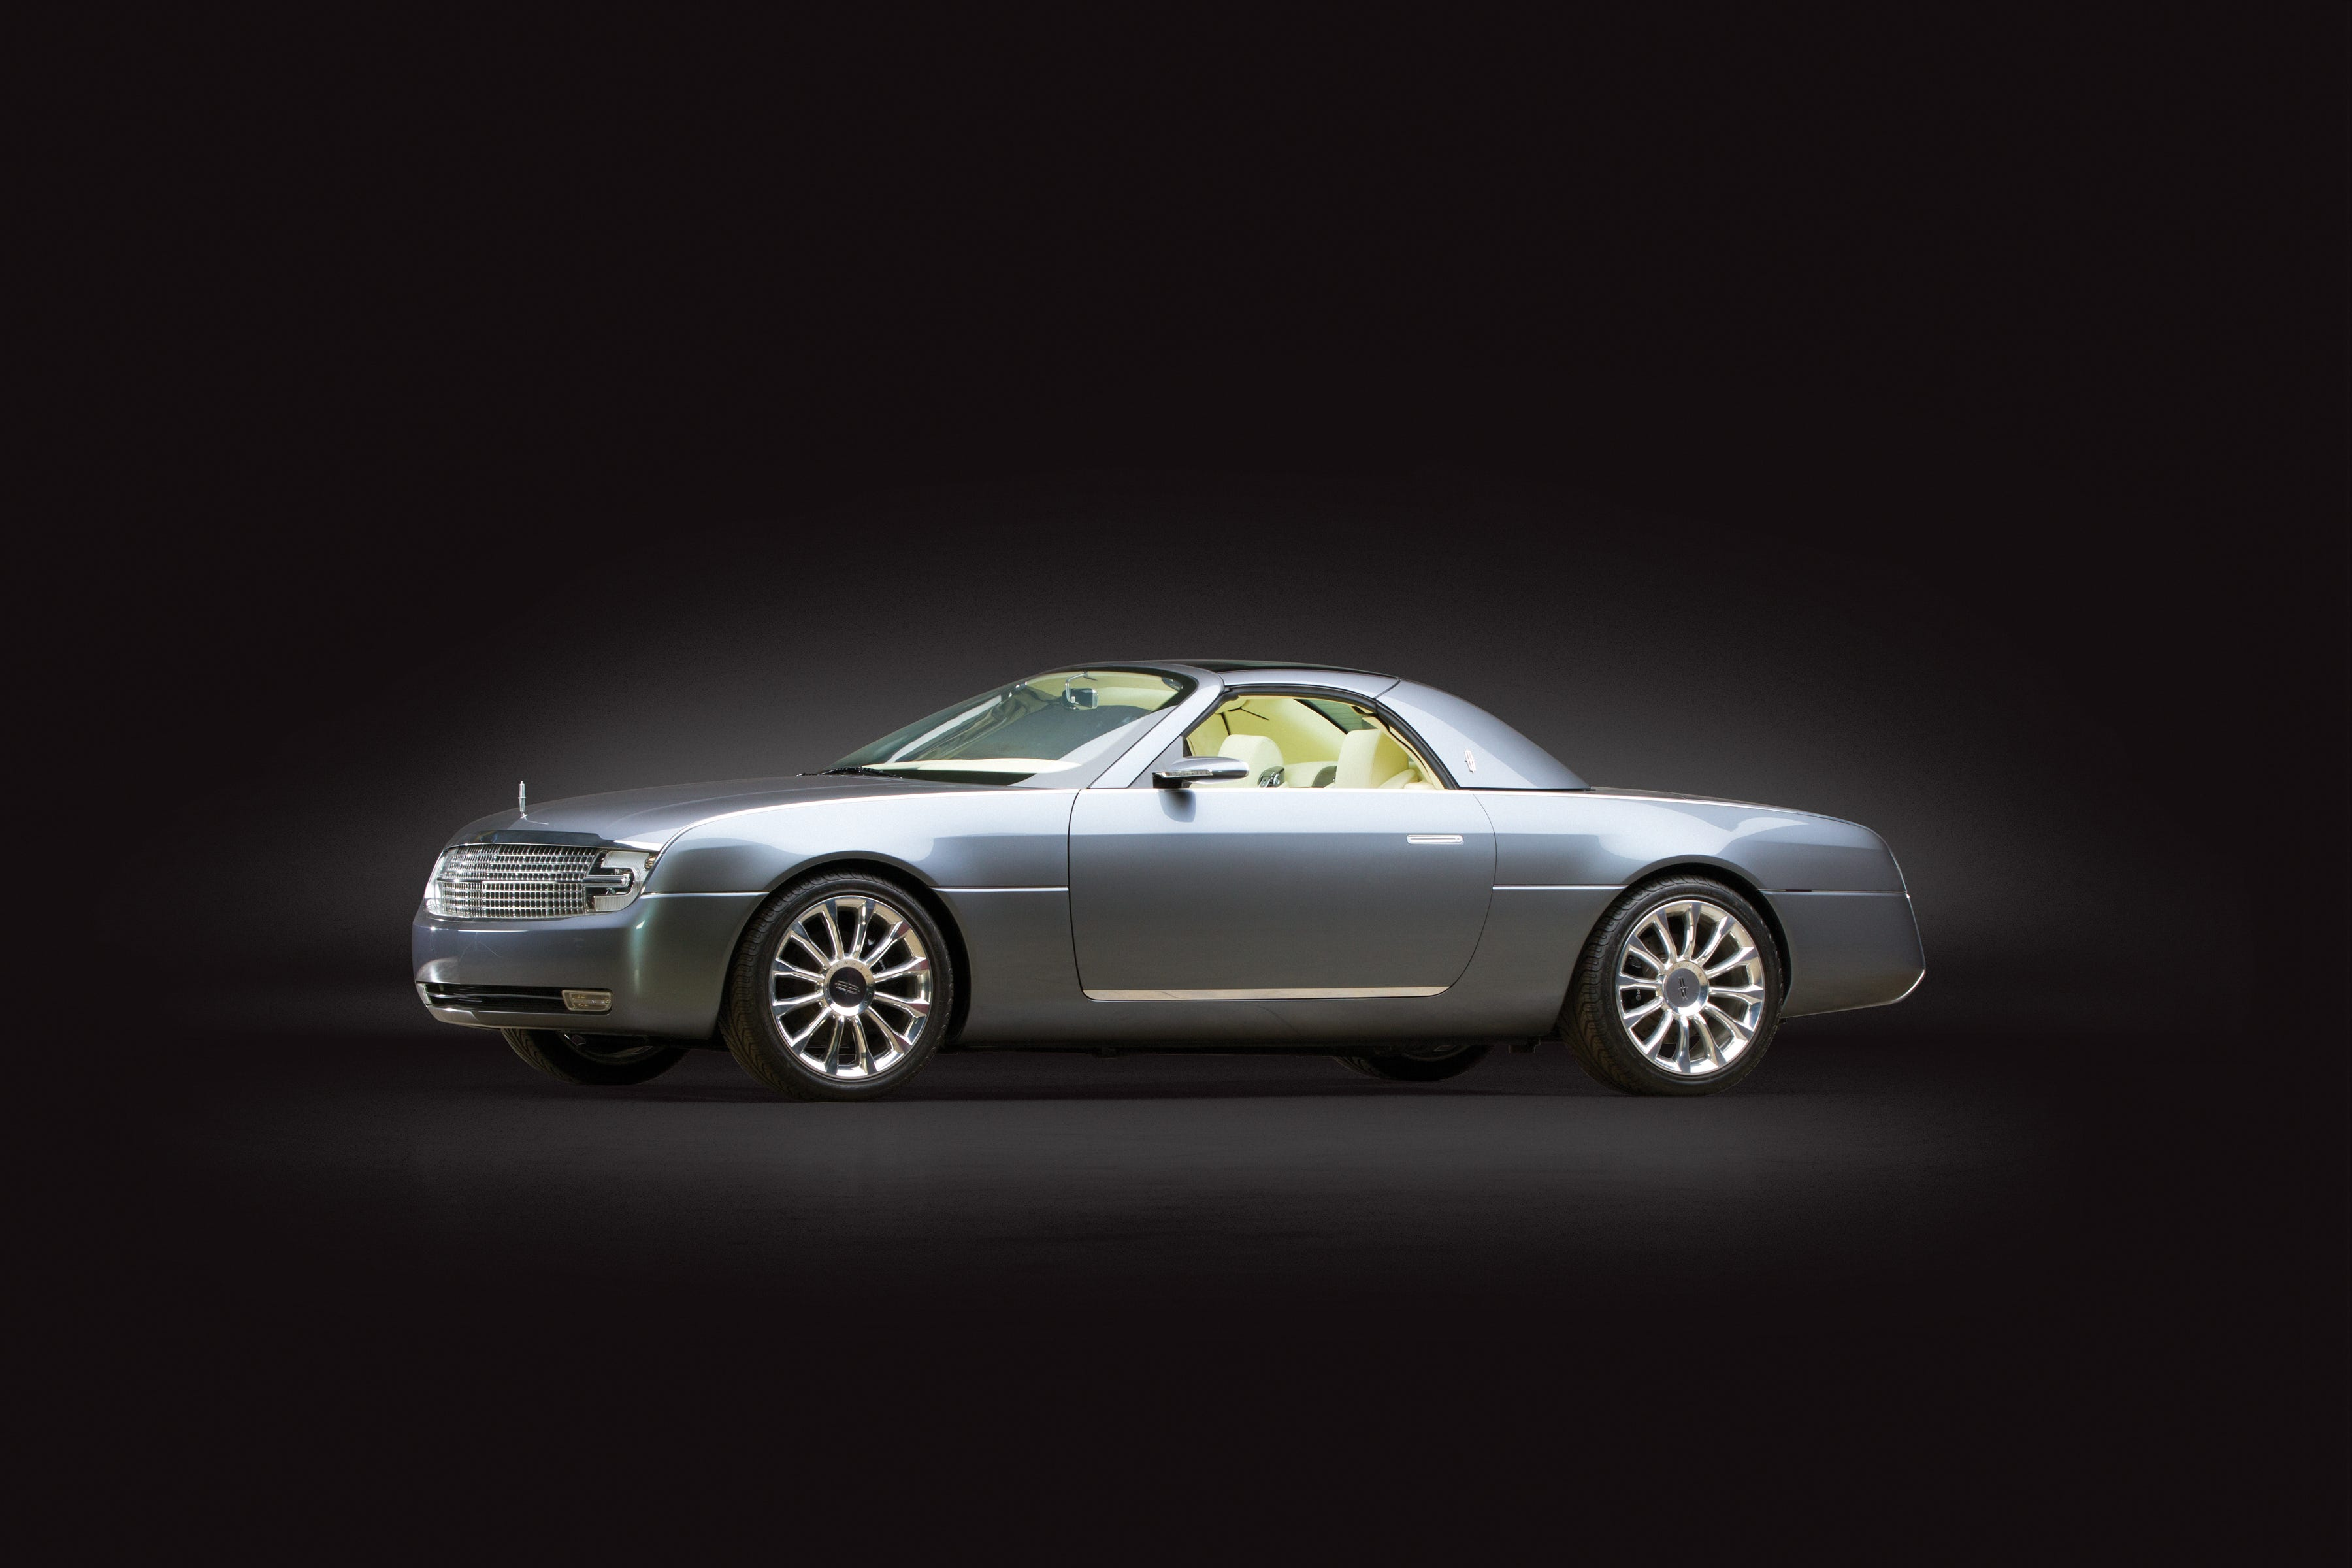 2004 Lincoln Mark X concept & We Love Fordu0027s Past Present And Future.: Some Famous Ford ... markmcfarlin.com